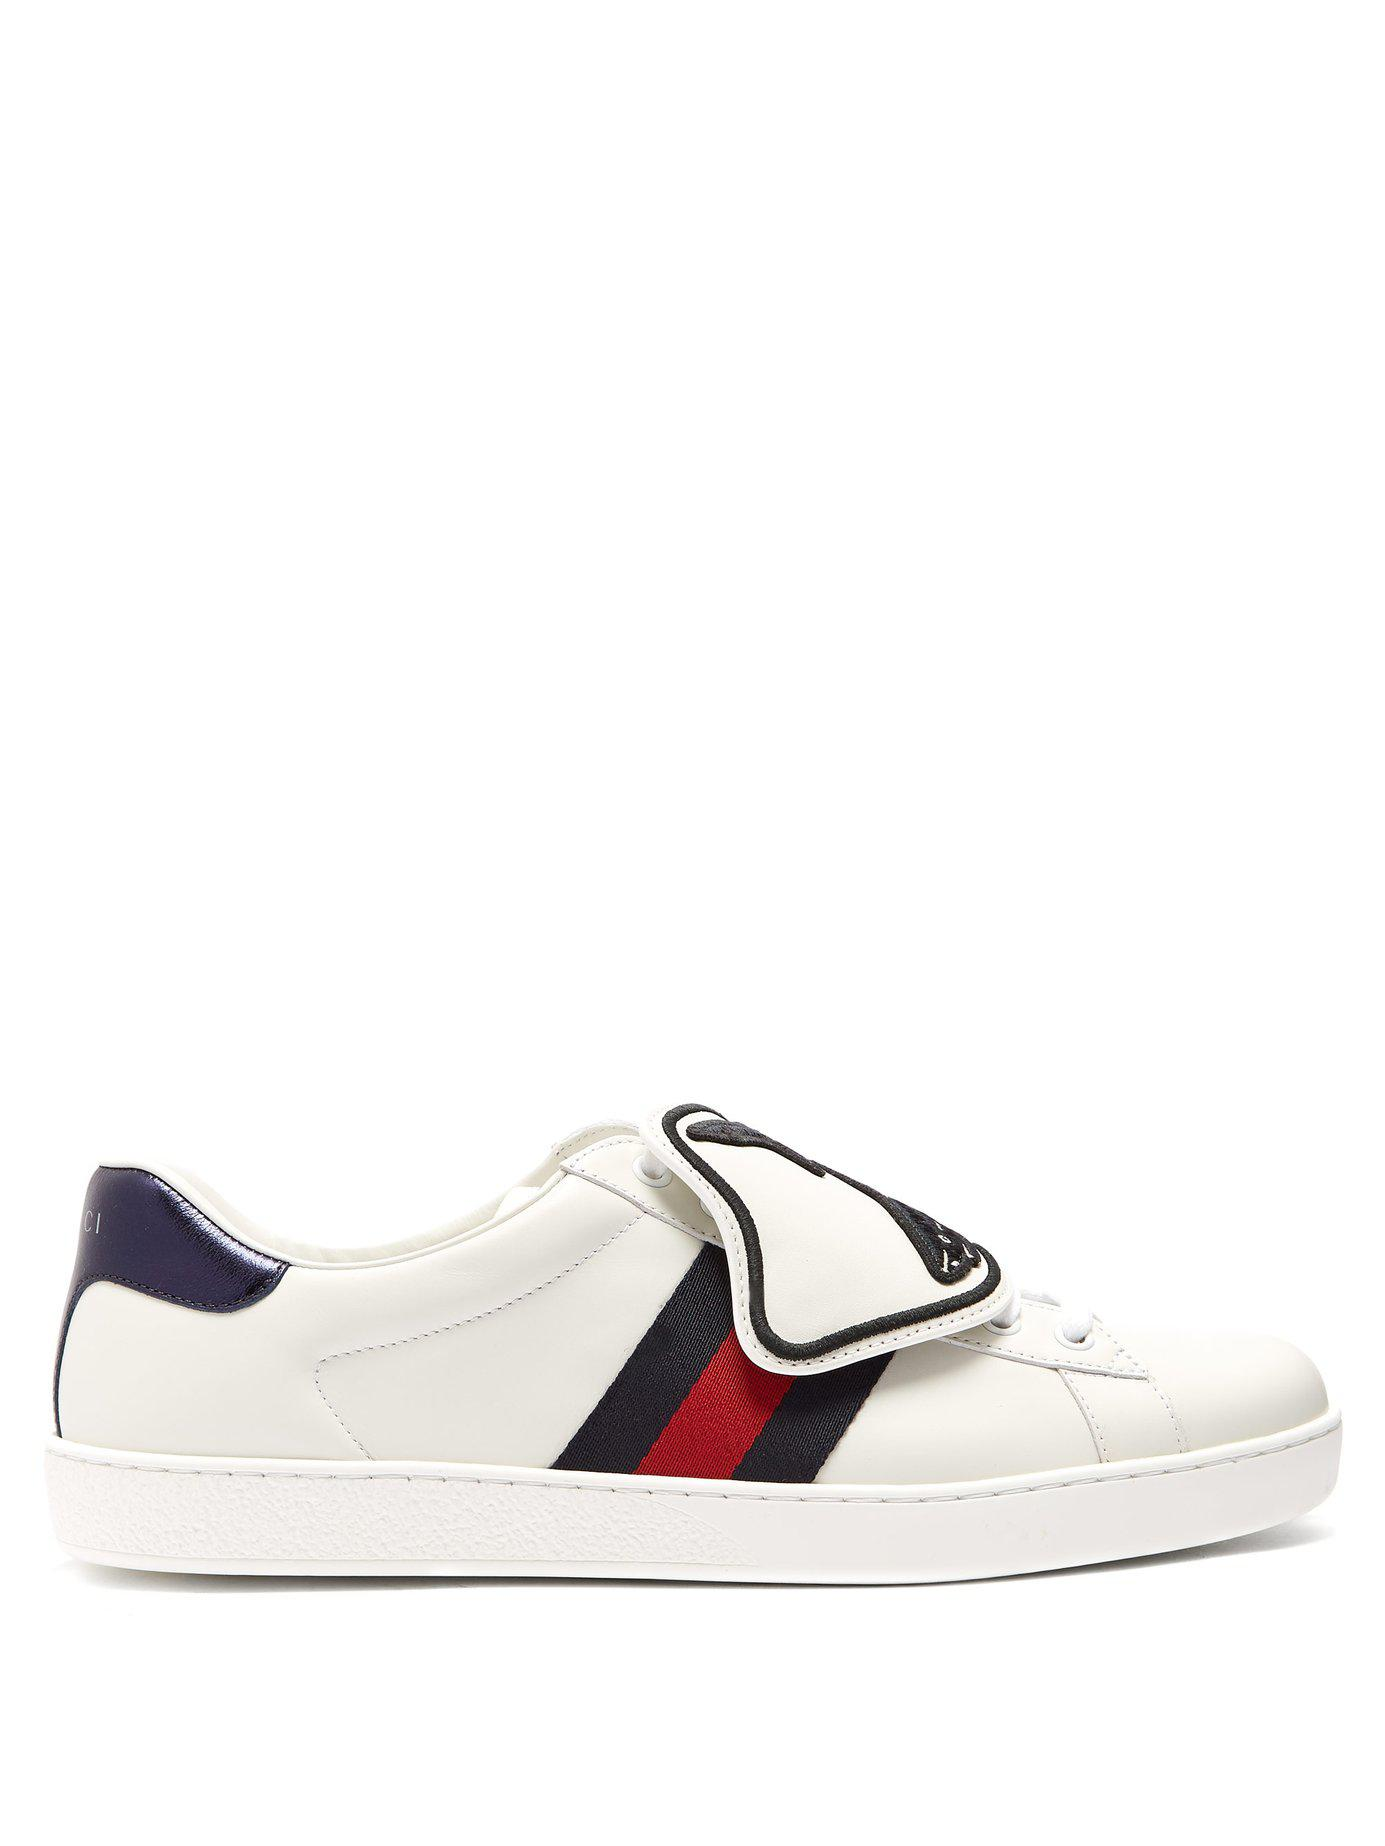 32c4a5f65bc Lyst - Gucci Ace Low Top Leather Trainers in White for Men